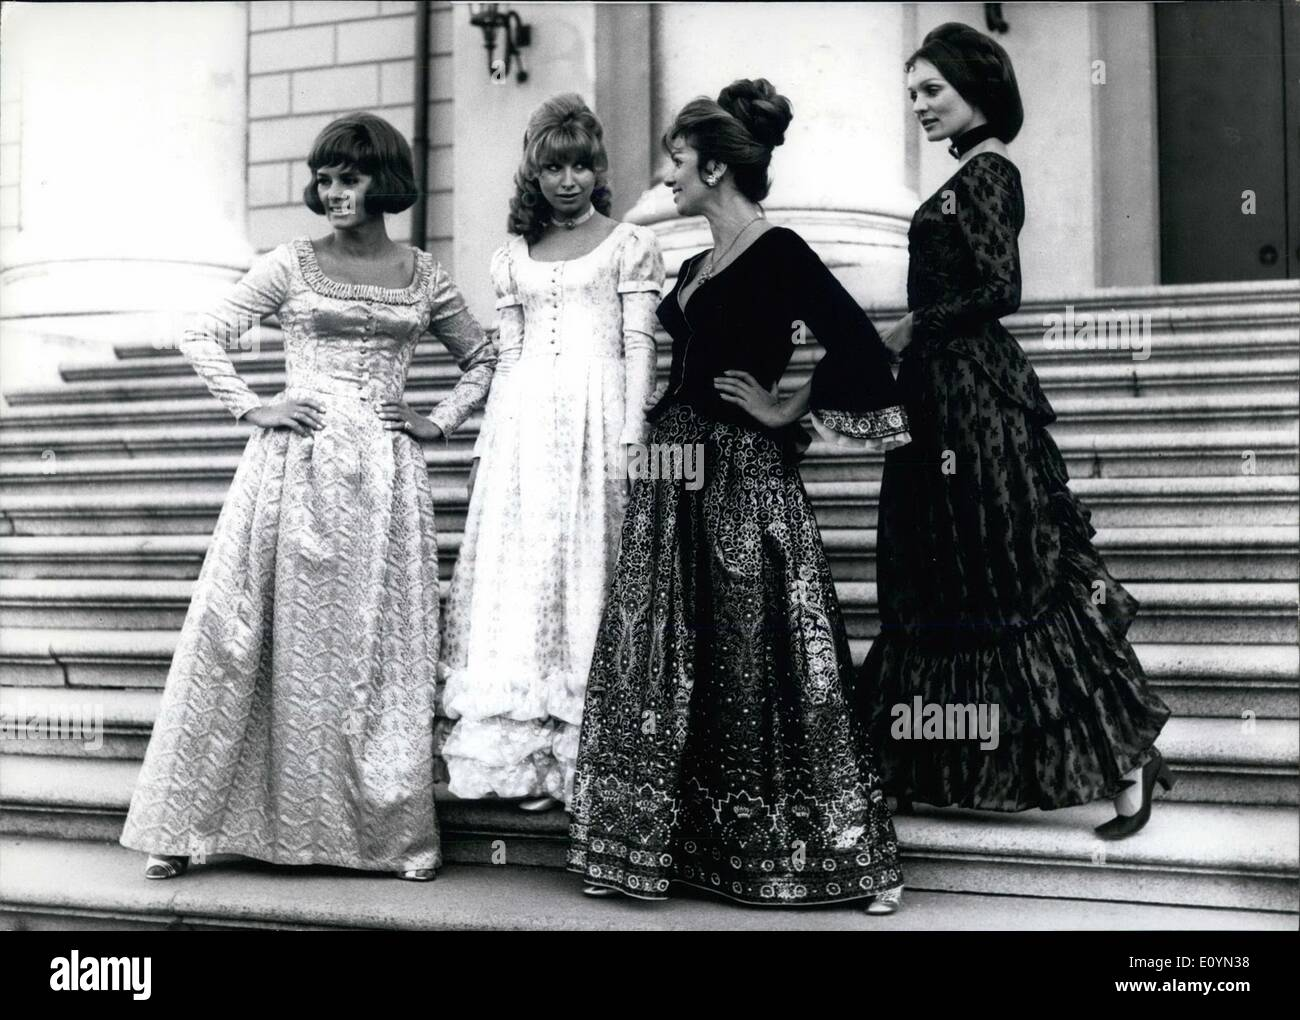 Nov. 11, 1970 - Show of Bavarian costumes in Munich: In front of the Bavarian opera the photographer met these four young ladies. All models coming from Munich (Germany), present the latest fashion of a special shop for Bavarian and traditional costumes. Photo shows from left to right: Dora wears a long evening ''Dirndl'' (Bavarian National Costume) made a raspberry red brocade called ''Dorothee'' Conny wears a long blue Dirndl made of wool which ca be washed trimmed with beige lace; It is called ''Cristallina'' - Stock Image